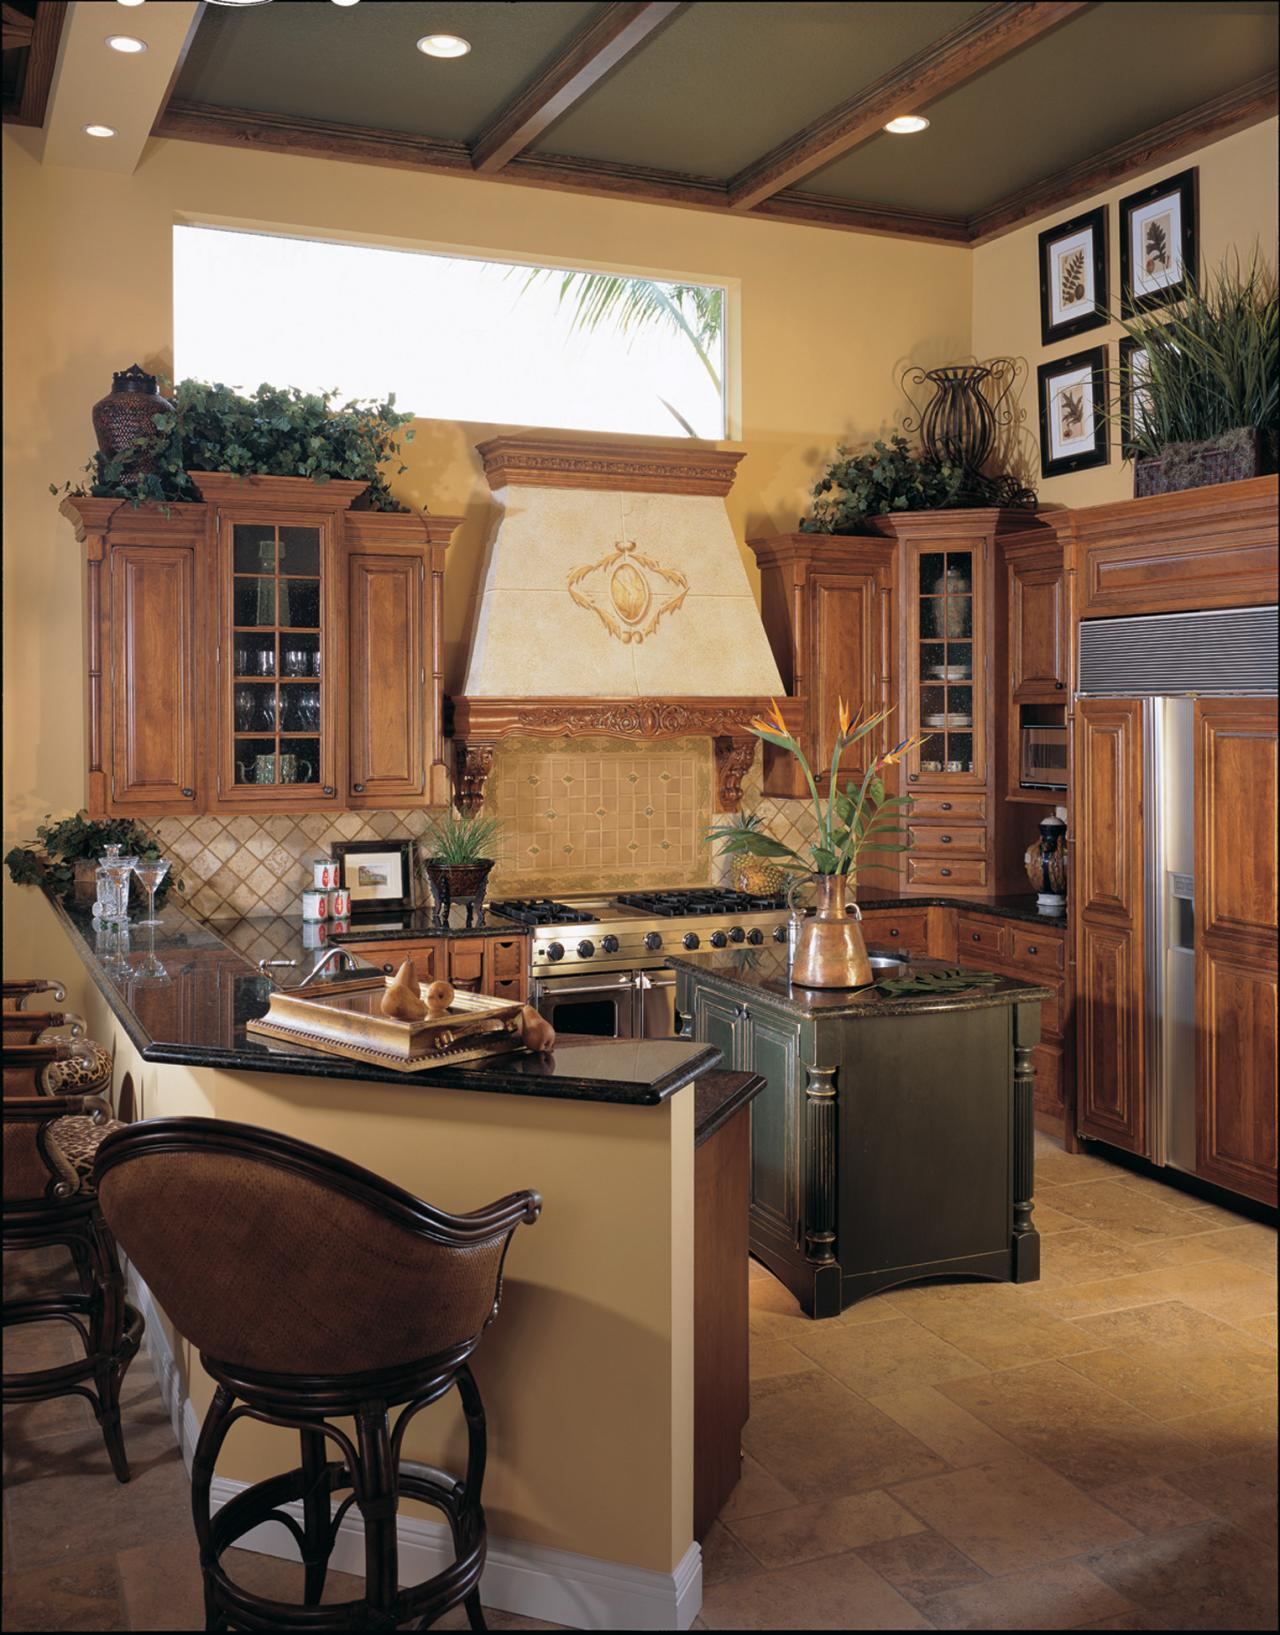 Omega Dynasty Kitchen Cabinets Graham Interiors Llc Omega Kitchens